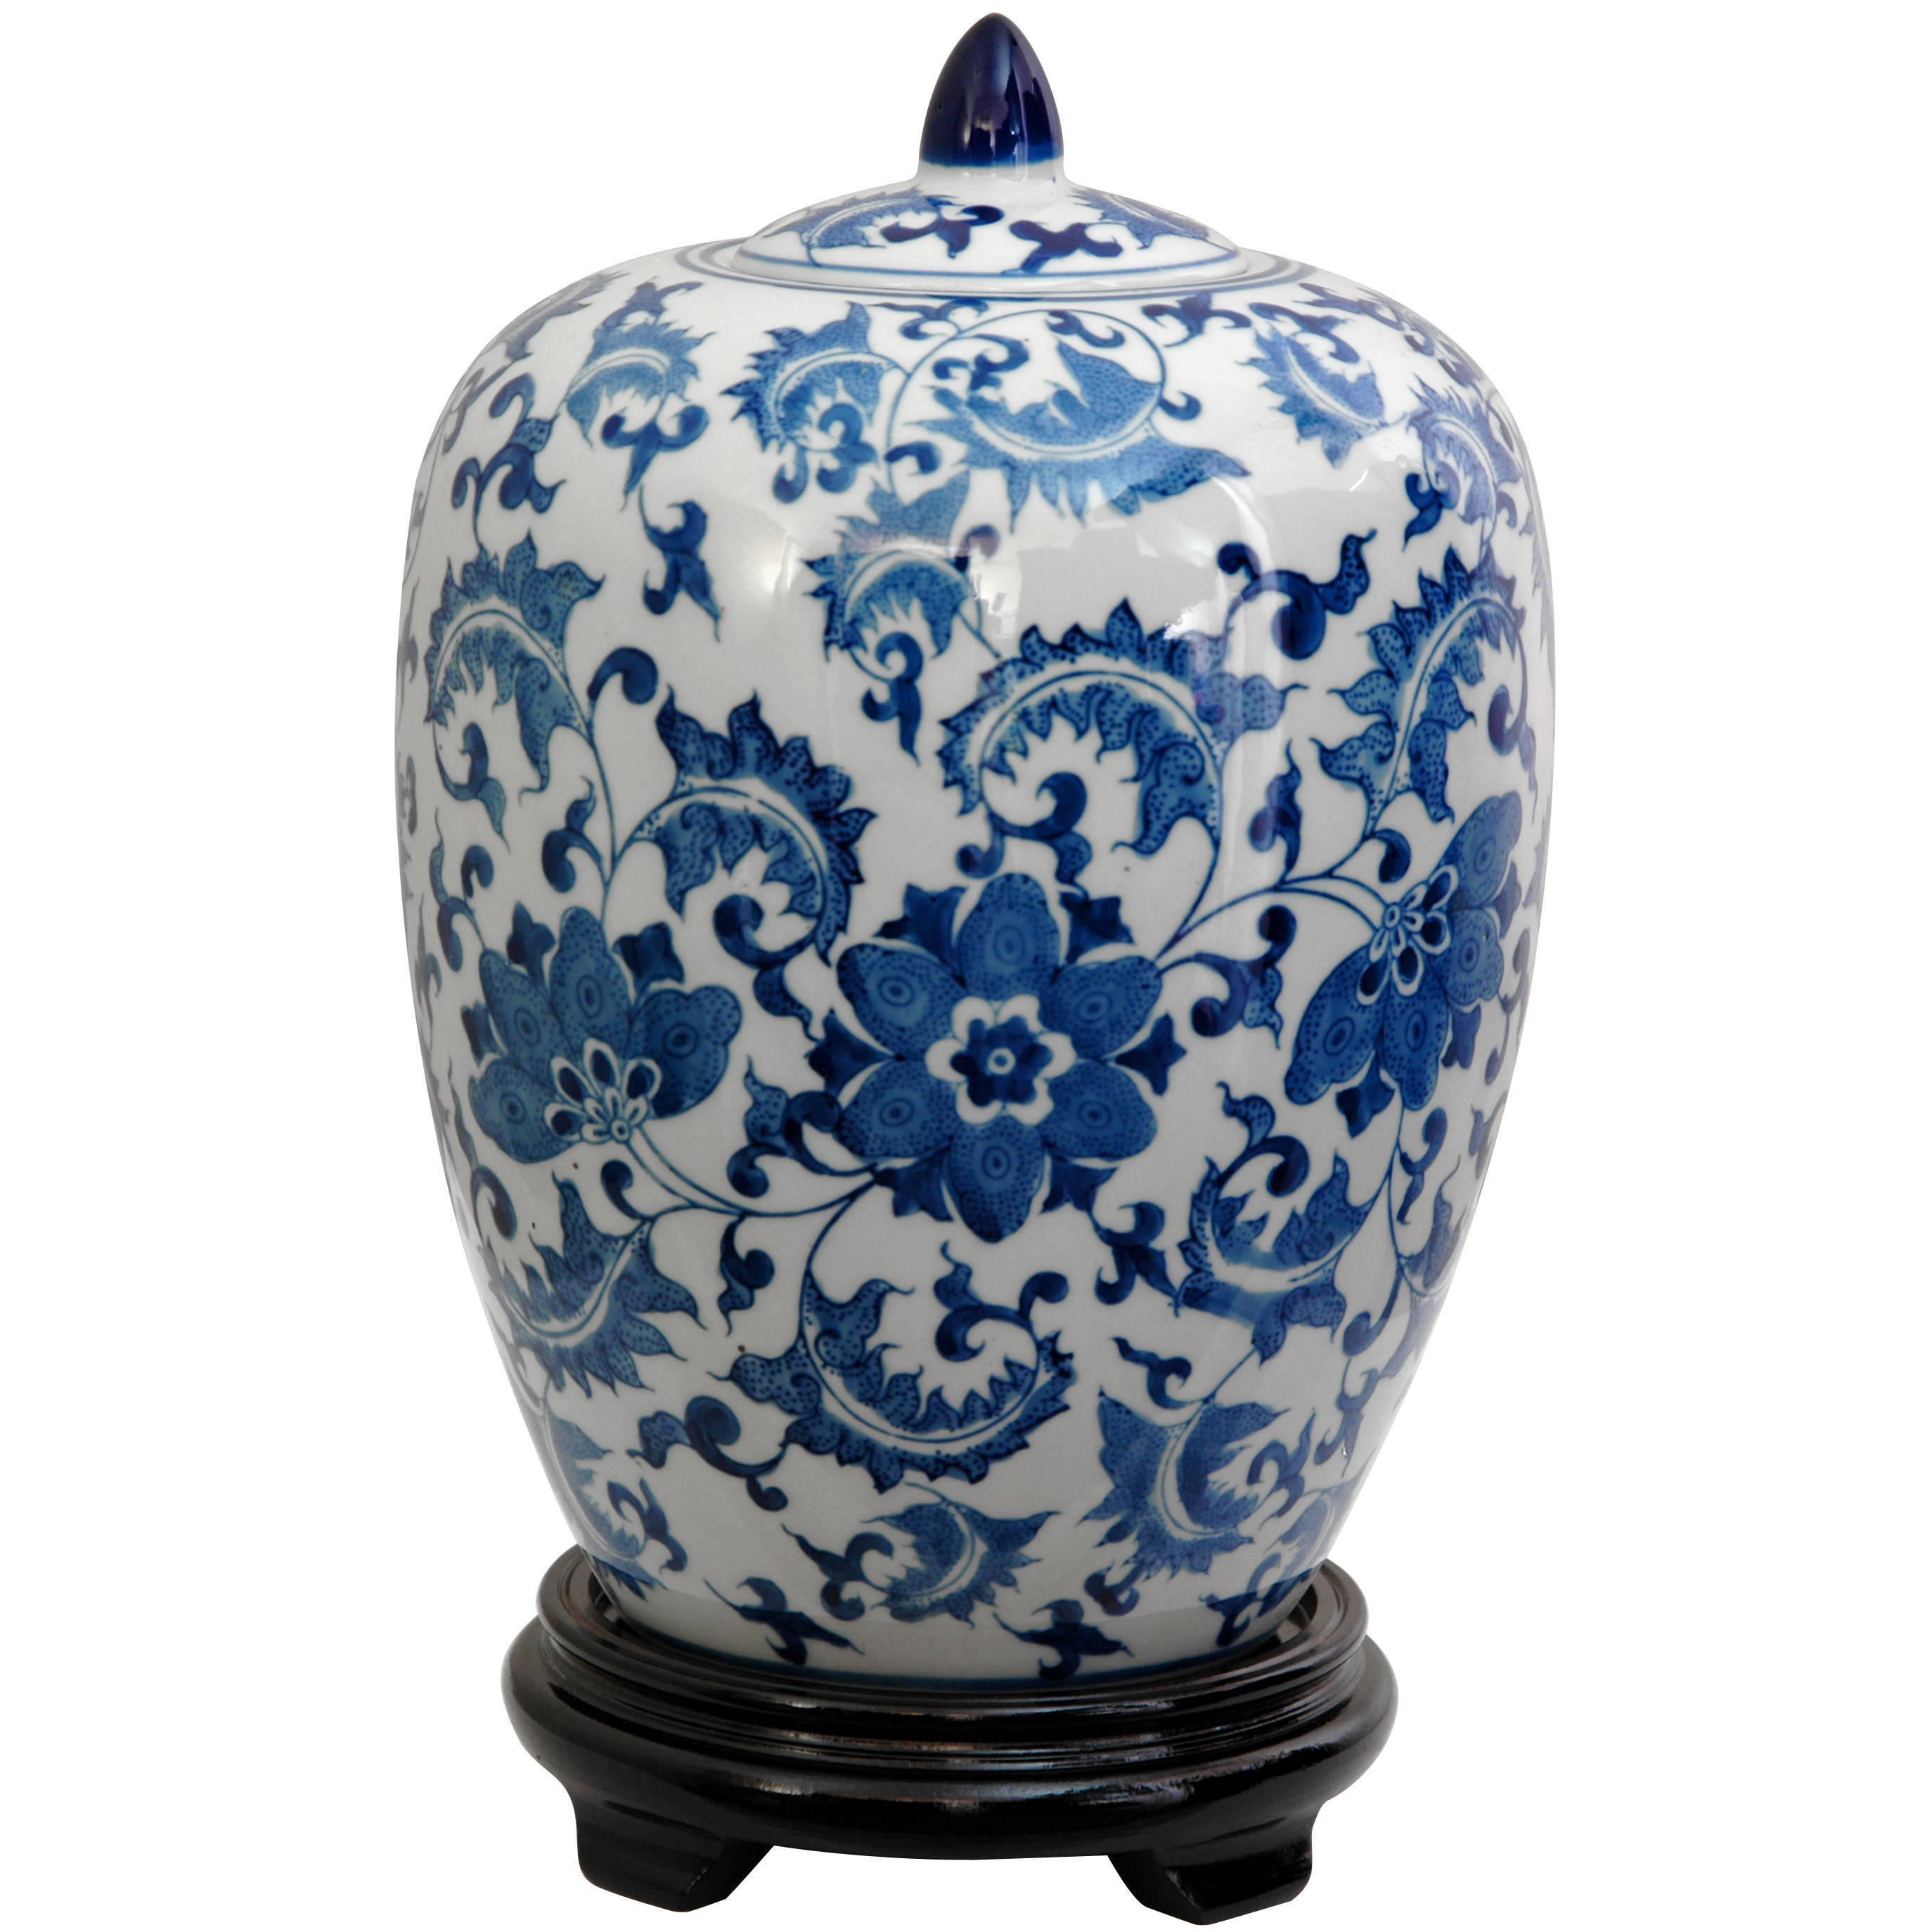 Handmade Porcelain 12 Inch Blue And White Fl Vase Jar China Free Shipping Today 5675306